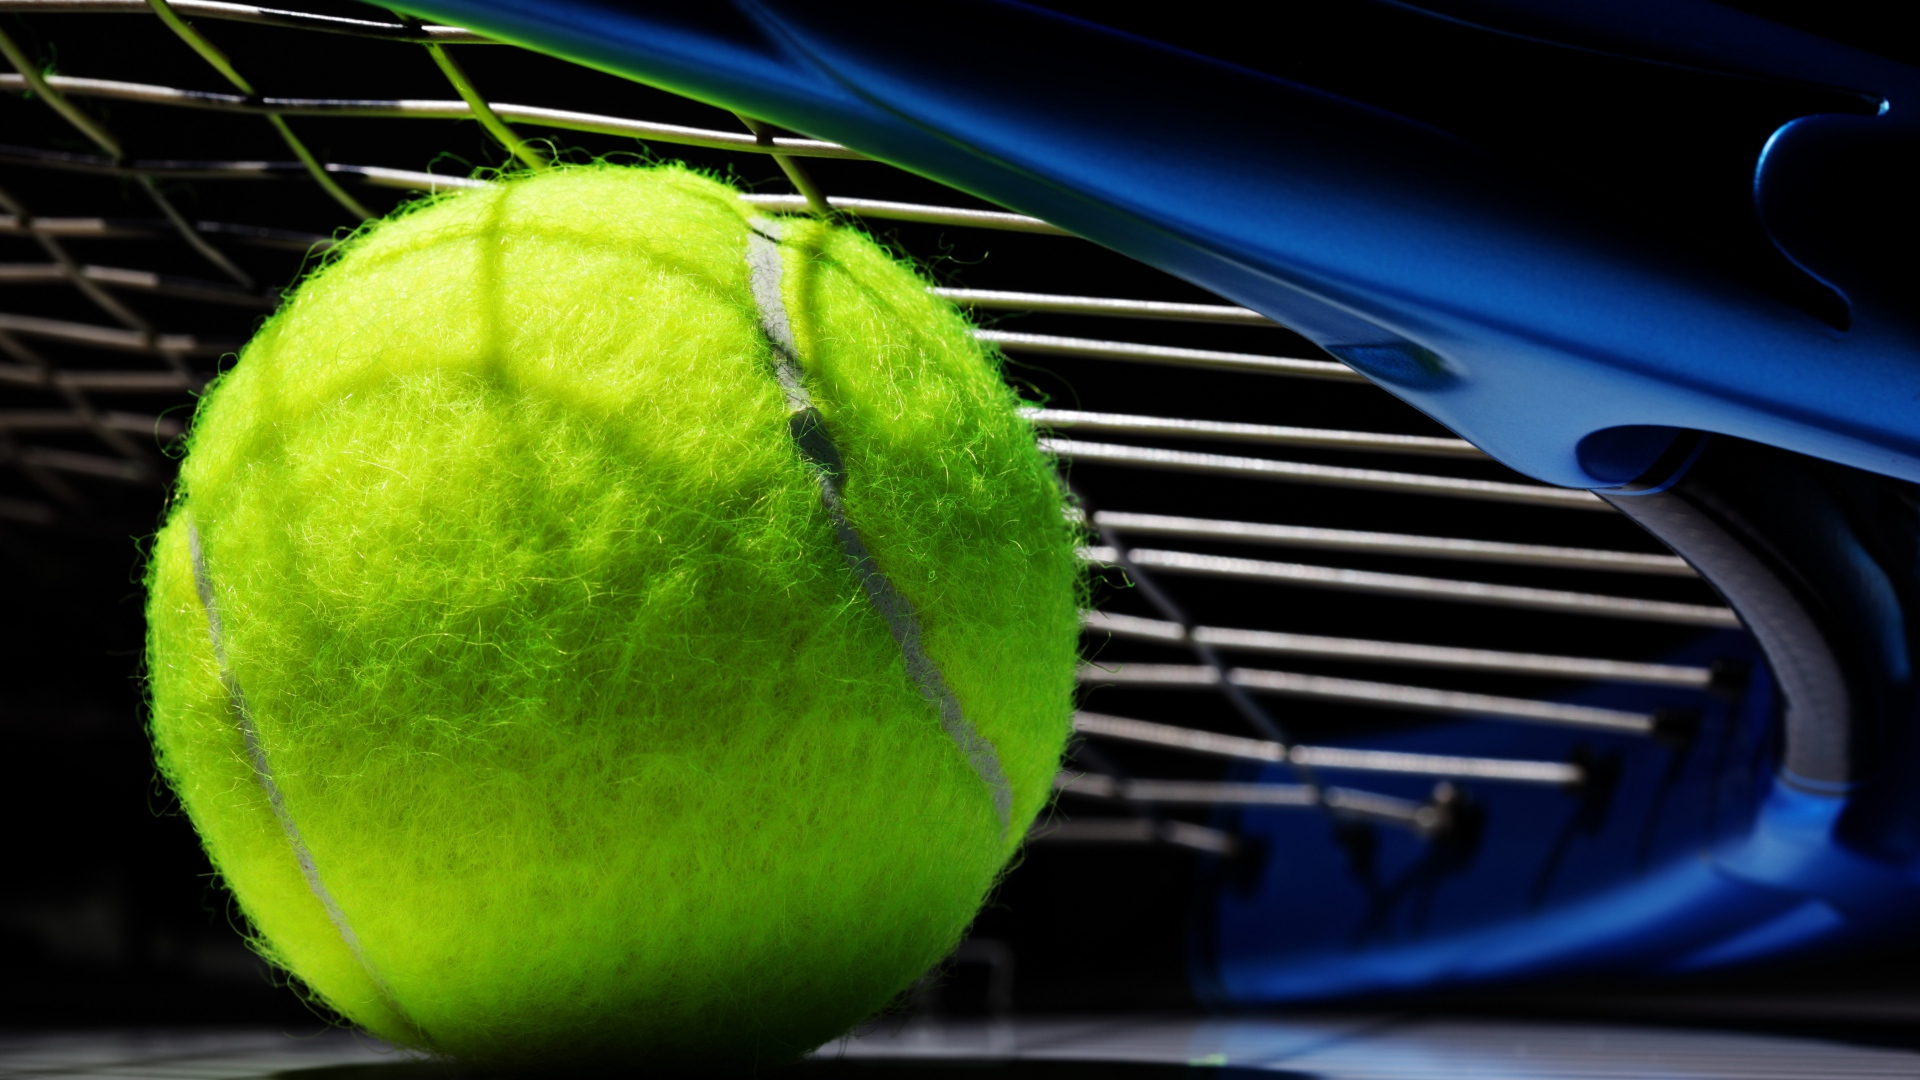 tennis ball up close wallpaper 59881